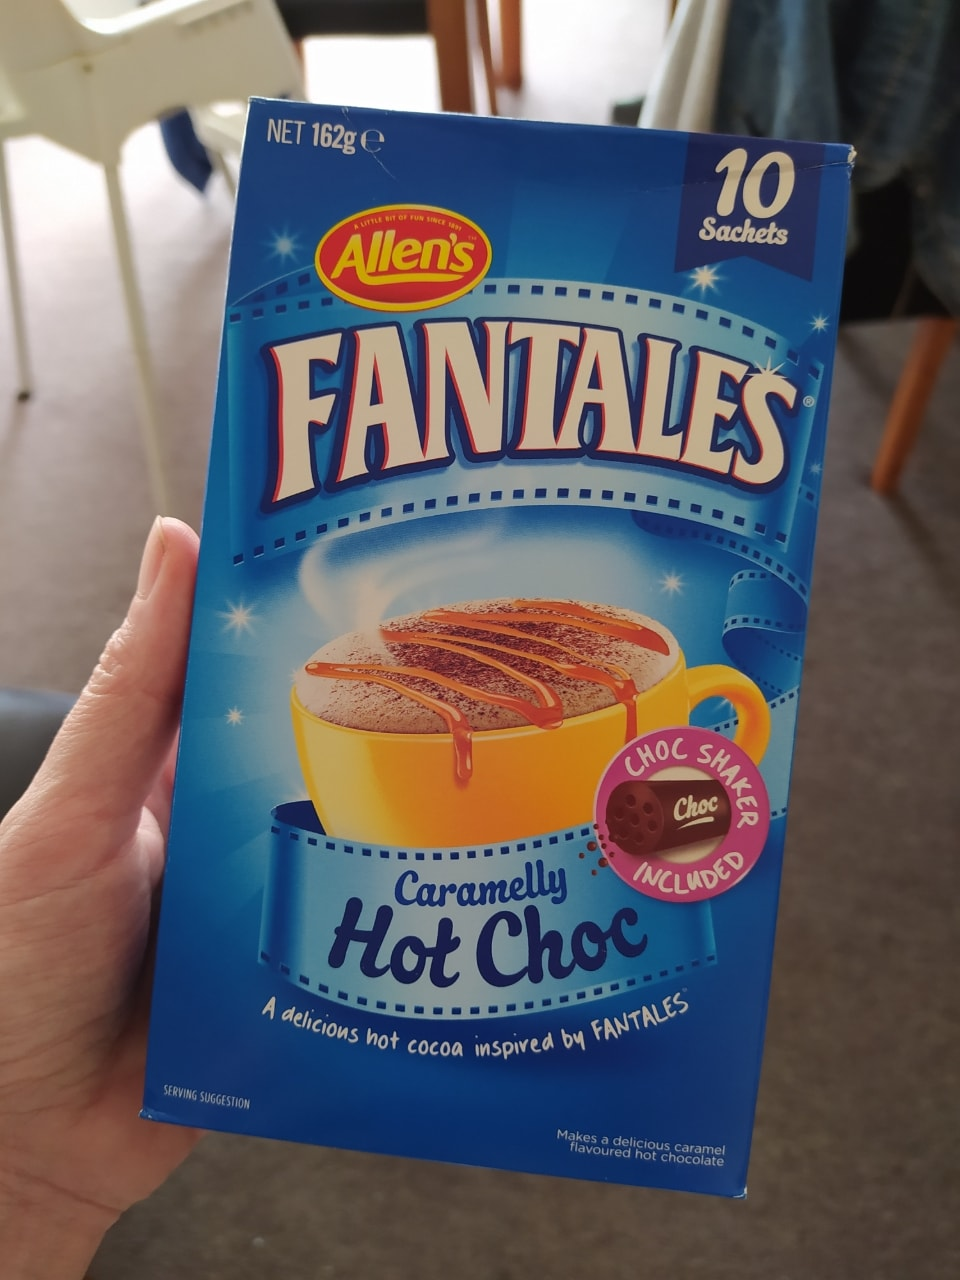 Fatales caramelly hot choc